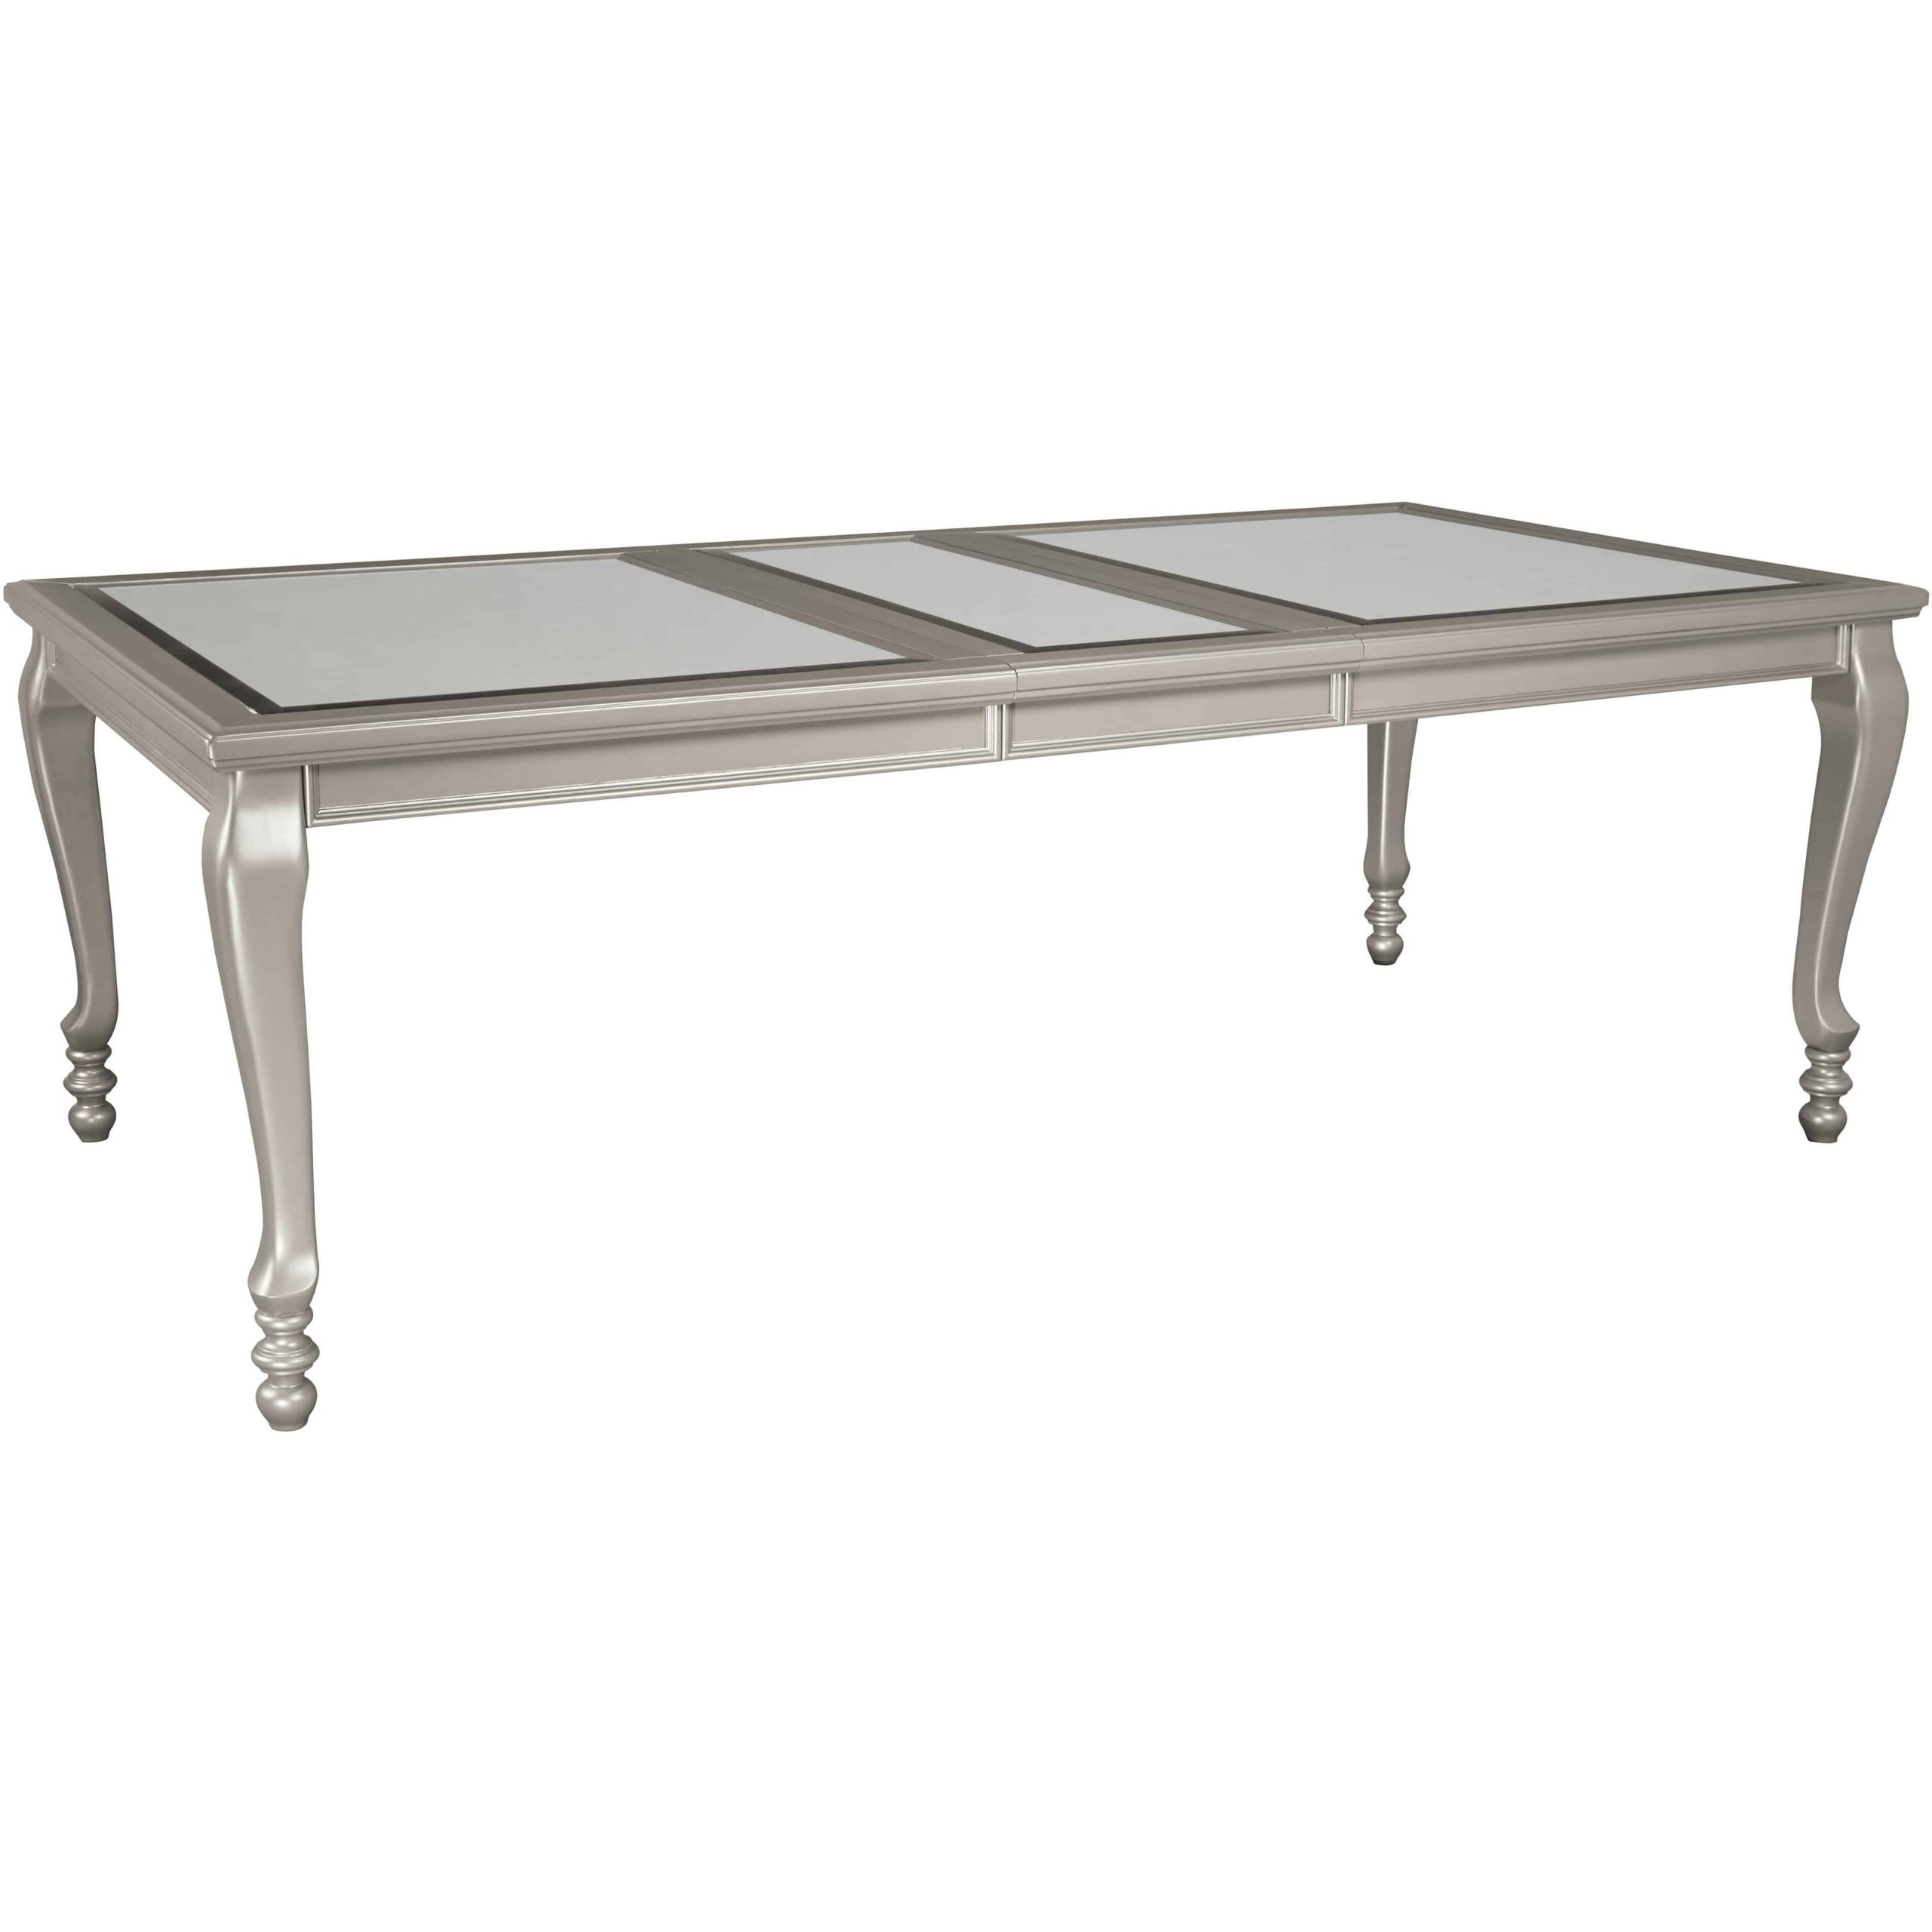 Coralayne Rectangular Dining Room Extension Table With Regard To Recent Genao 35'' Dining Tables (View 3 of 15)